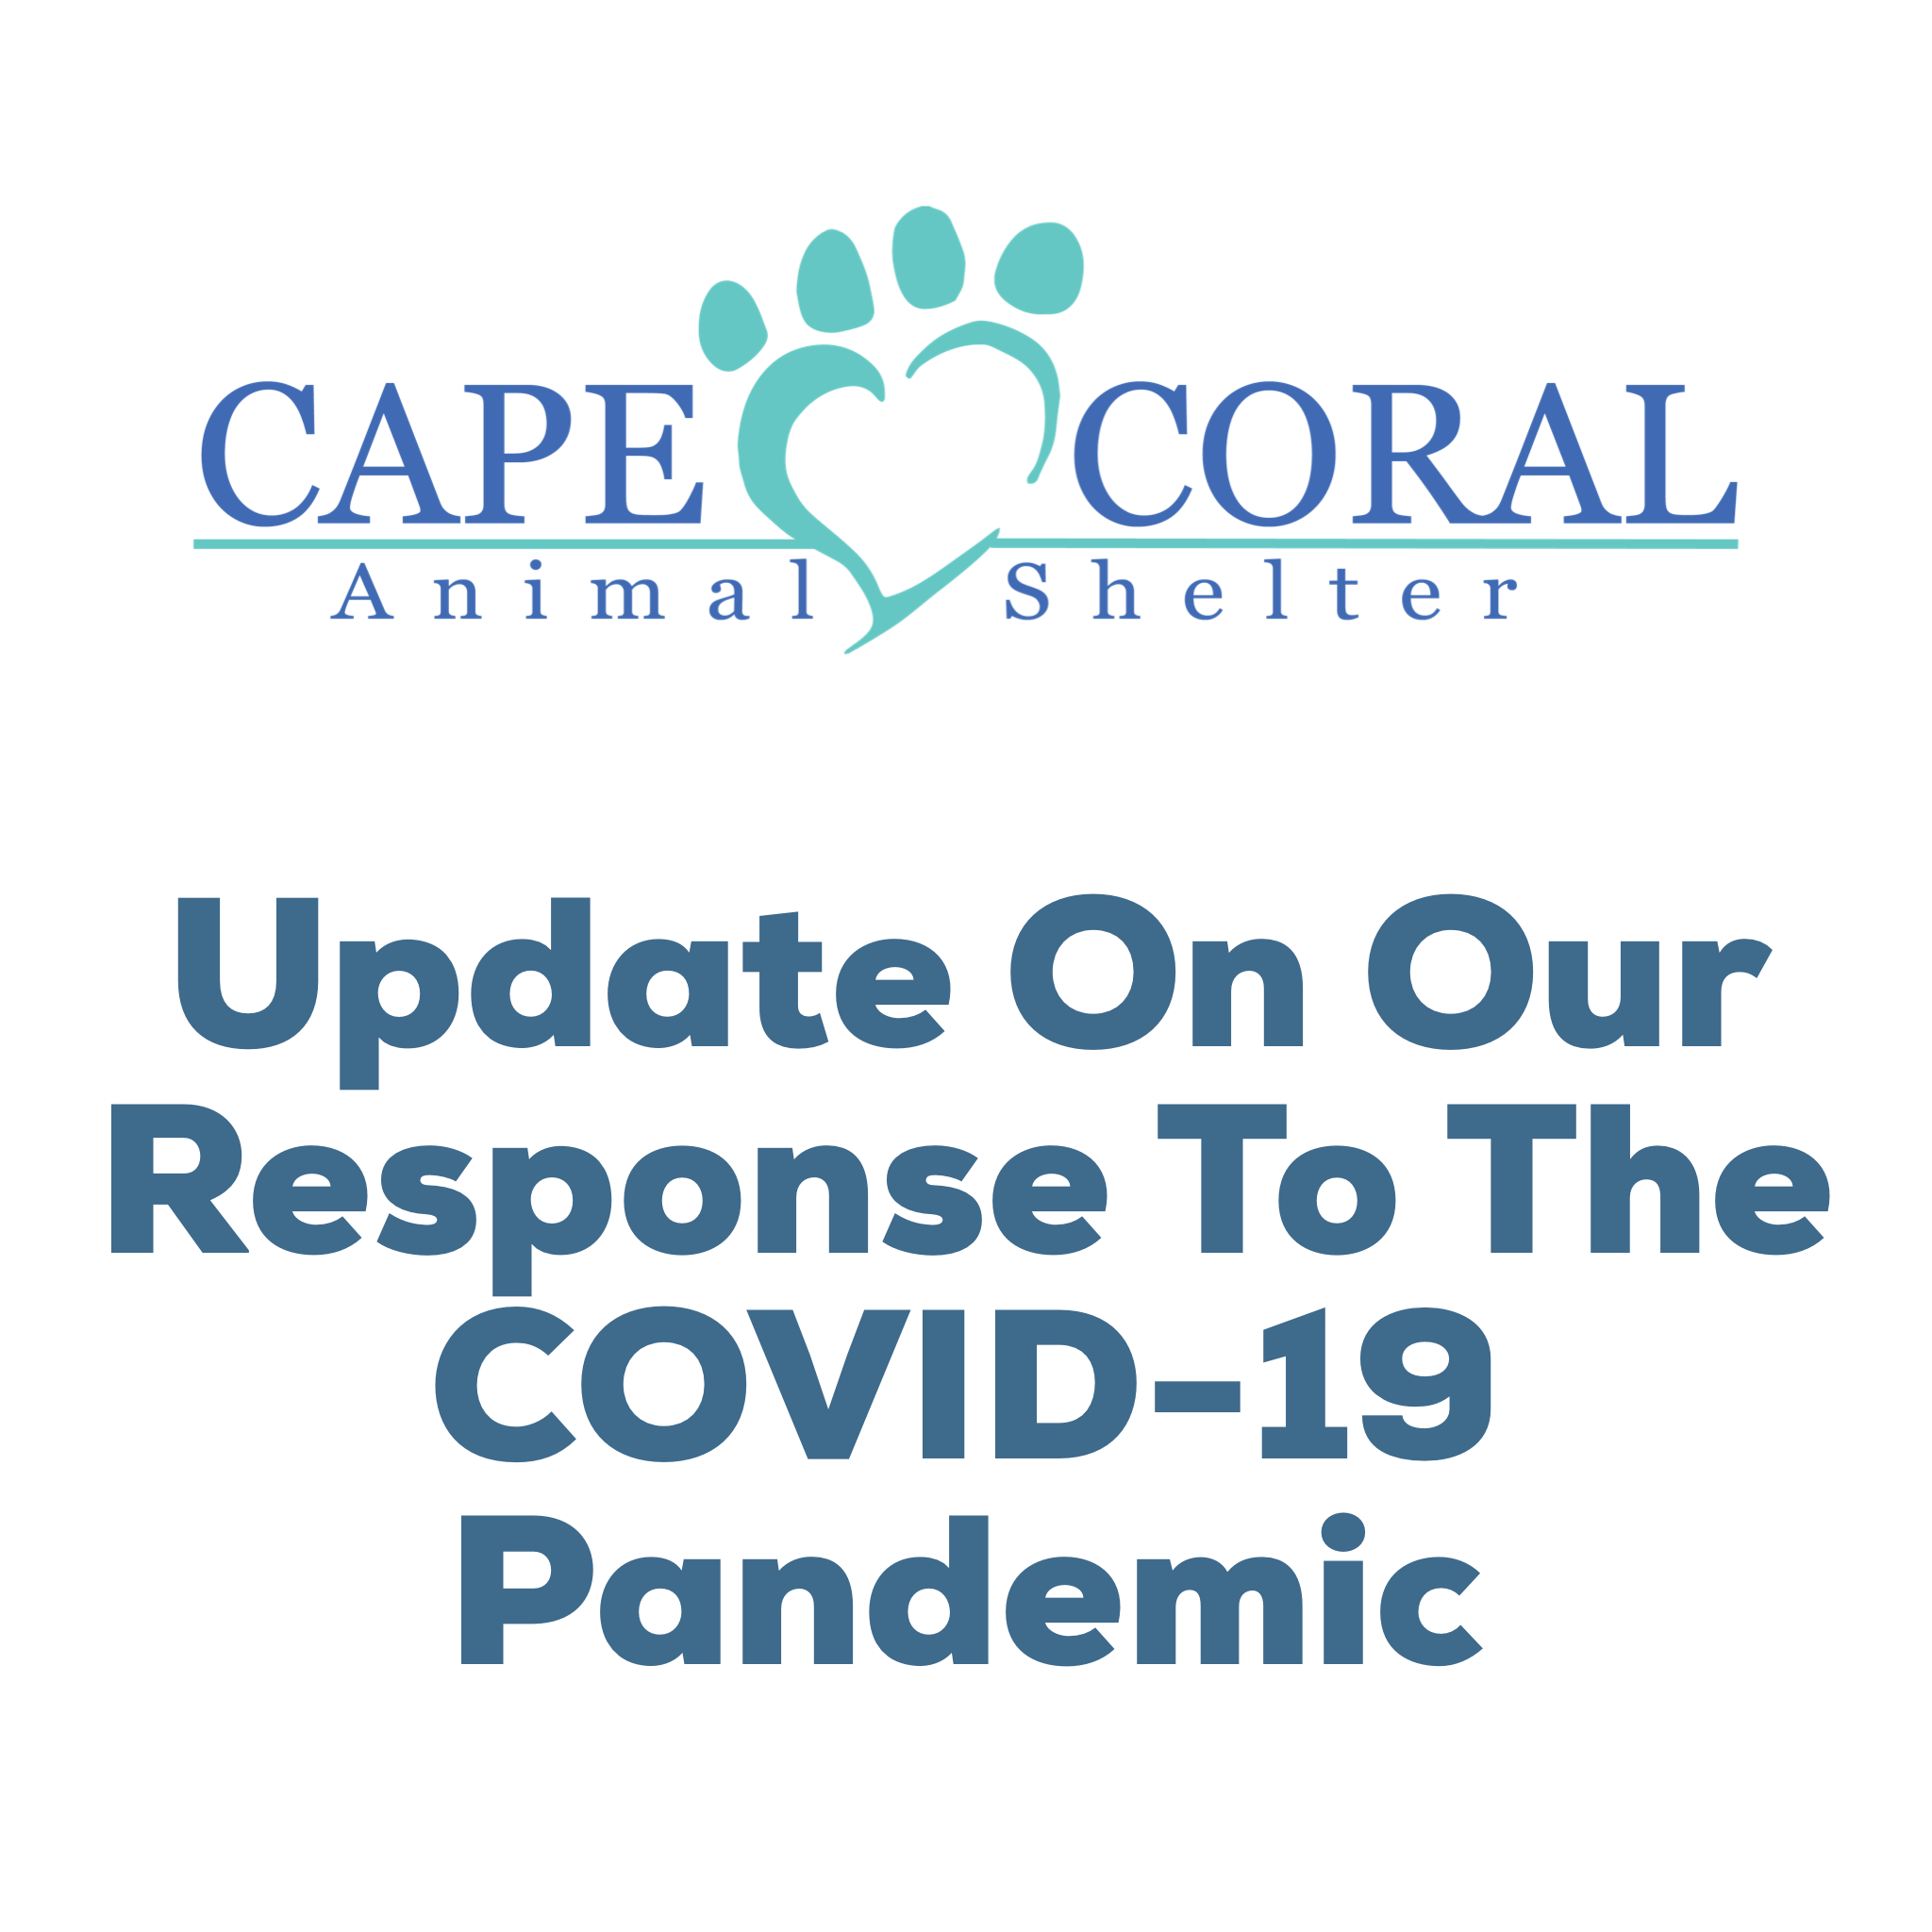 Update on COVID-19 Pandemic